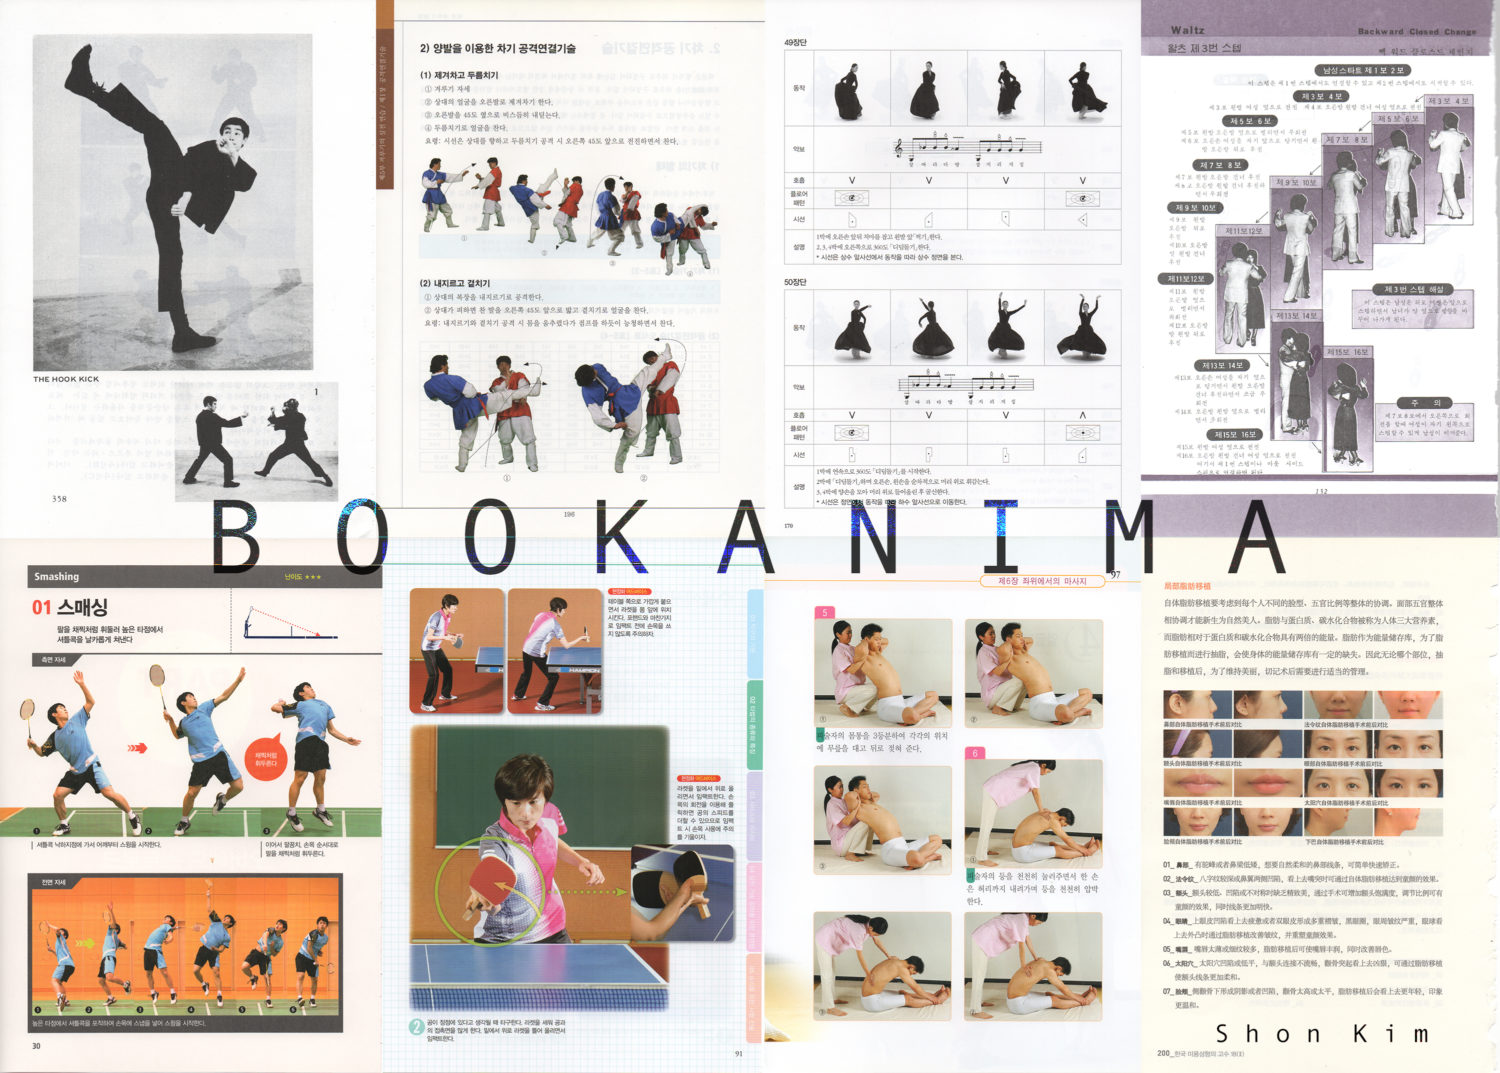 BOOKANIMA Dance_Shon Kim